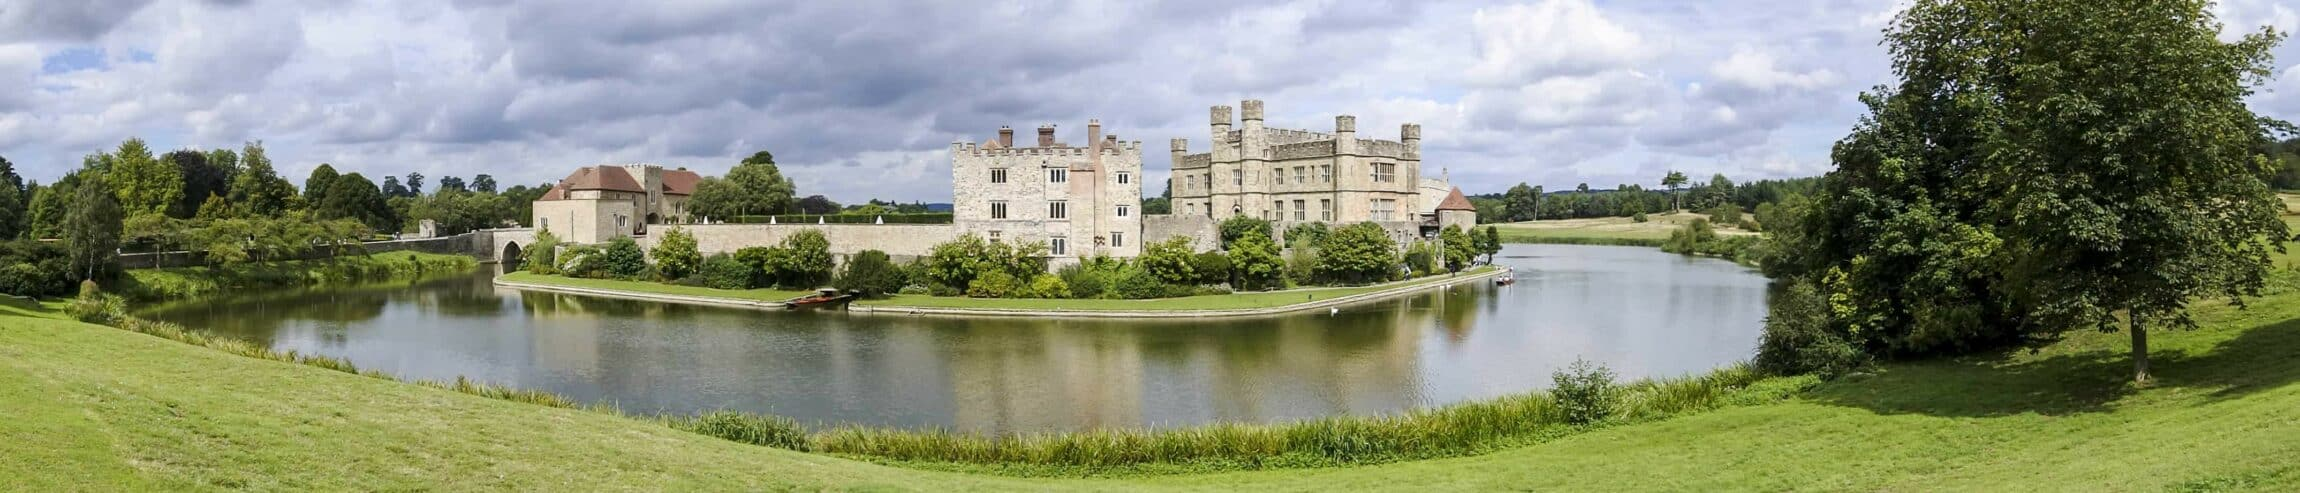 LEEDS CASTLE - Panorama of Leeds castle with the moat in the foreground